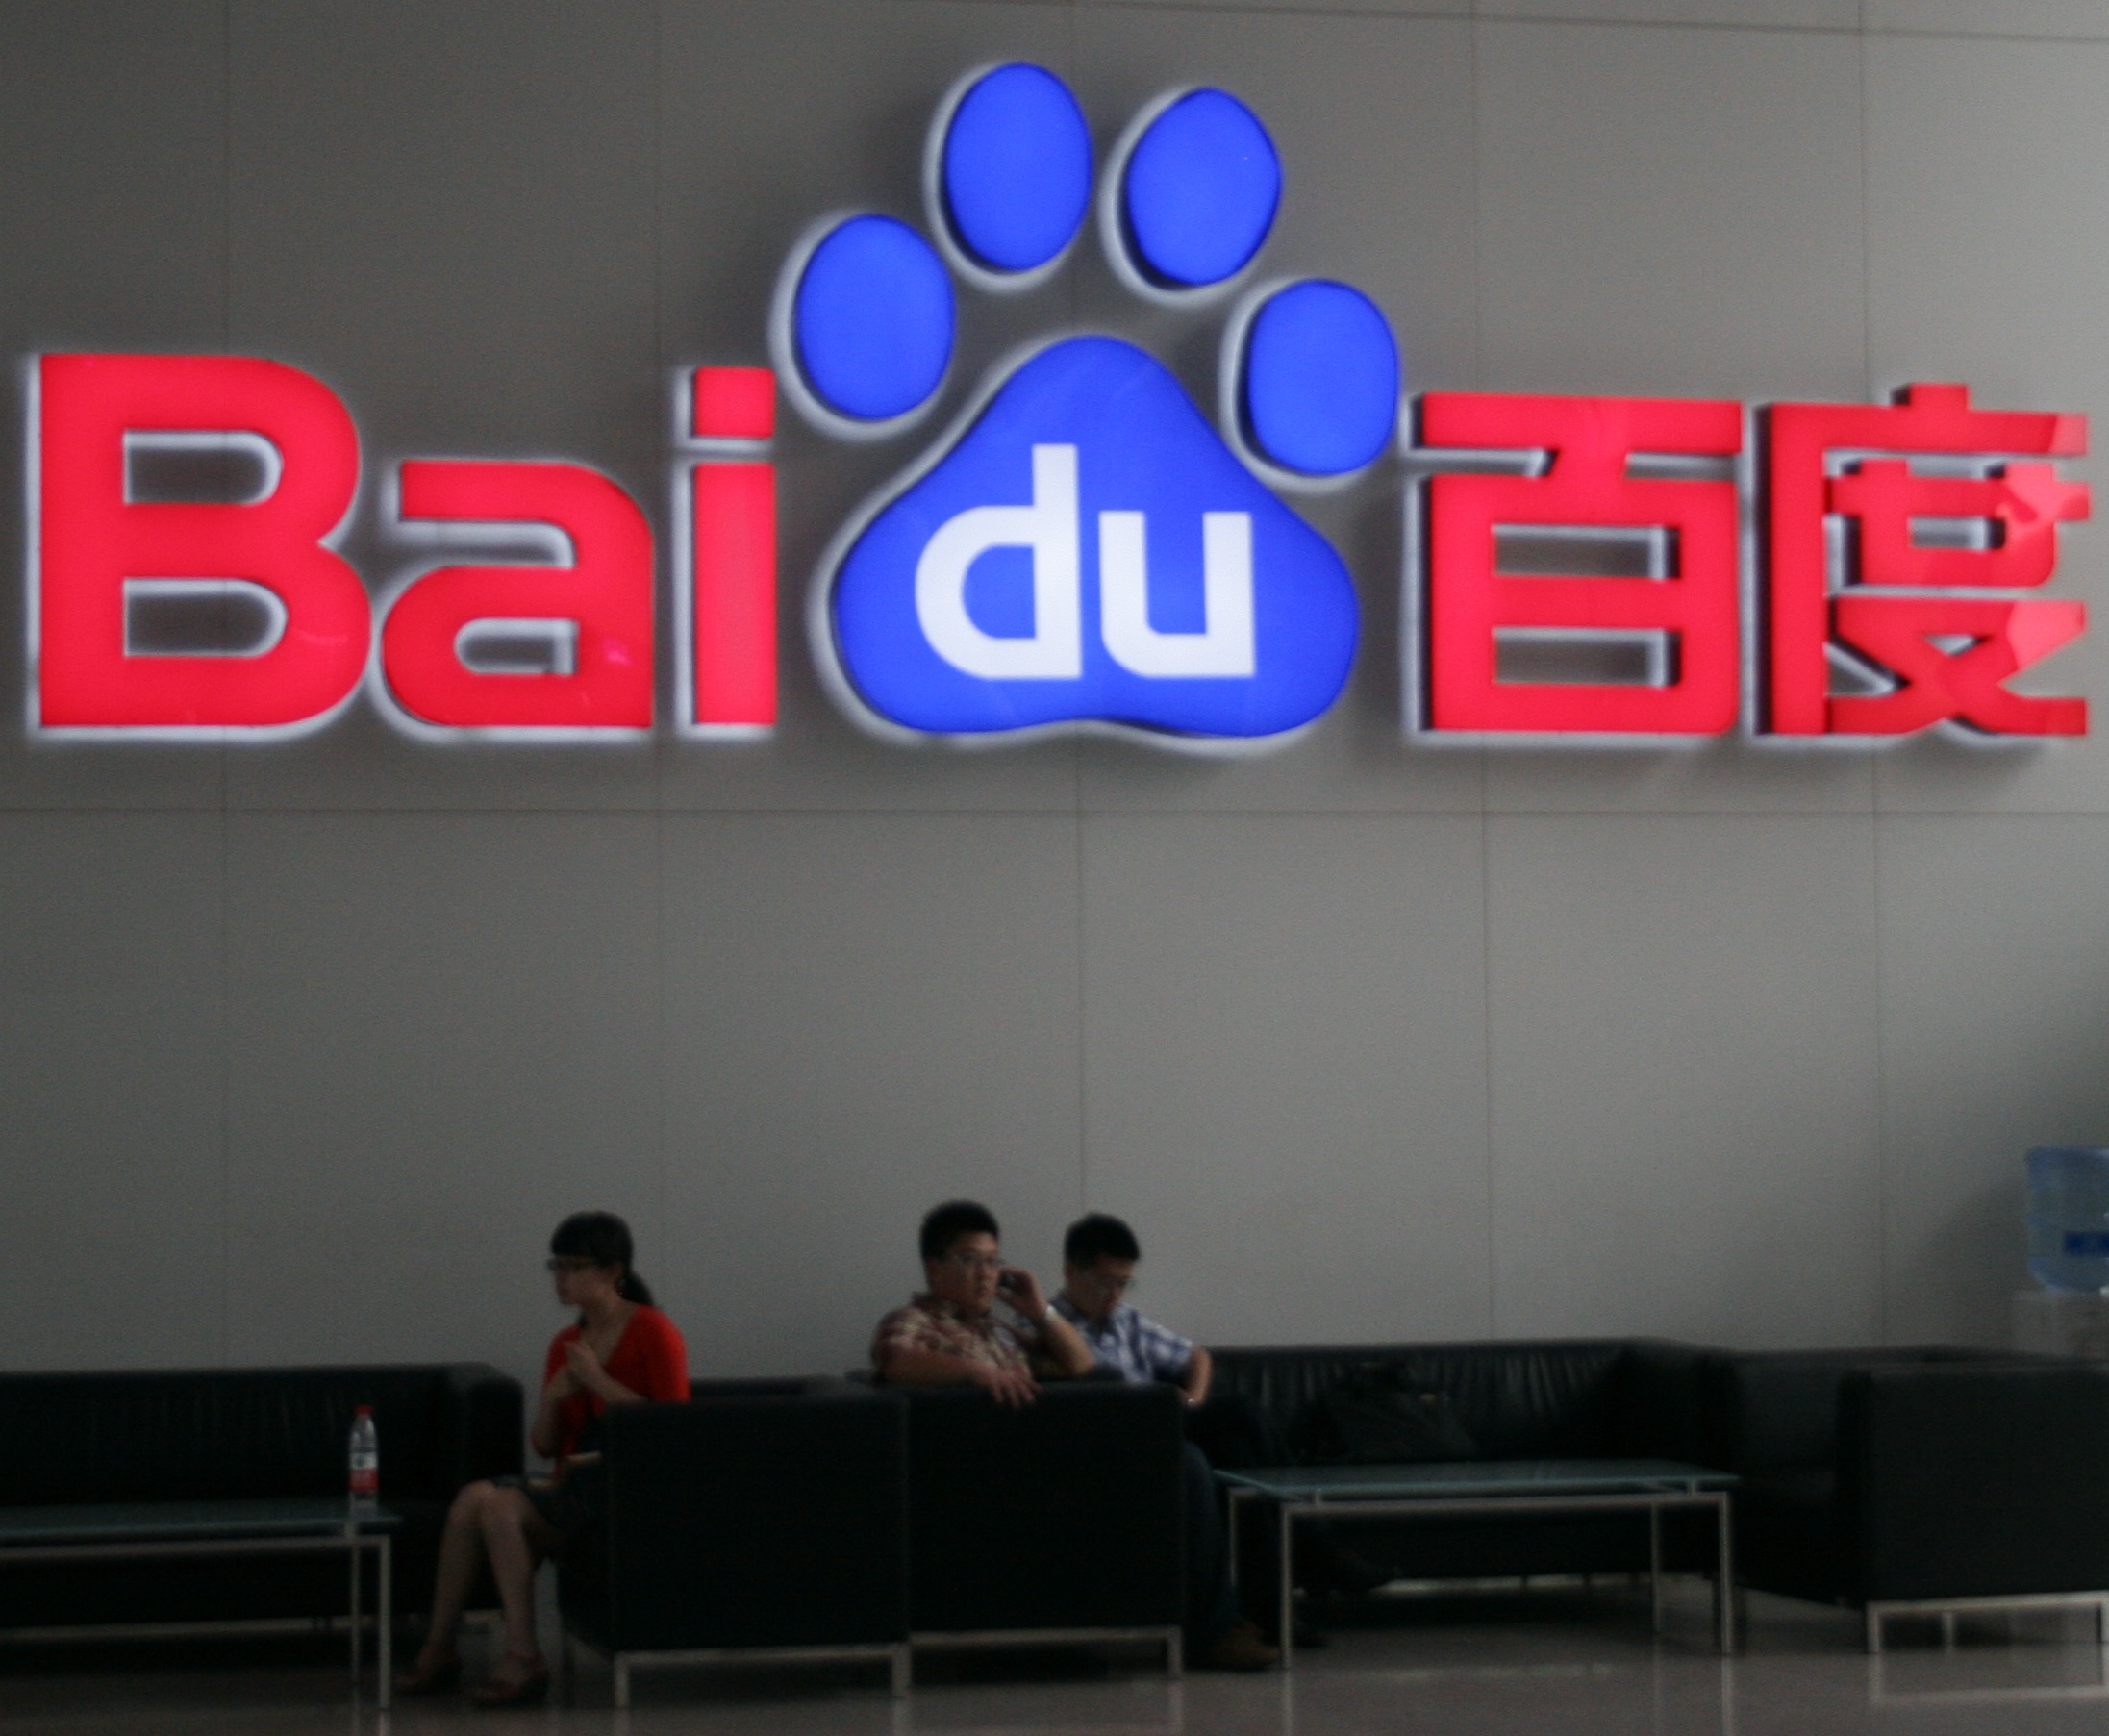 Chinese search engine Baidu posts steady growth in Q3 with $524.6m in profit and $994.6m in revenue